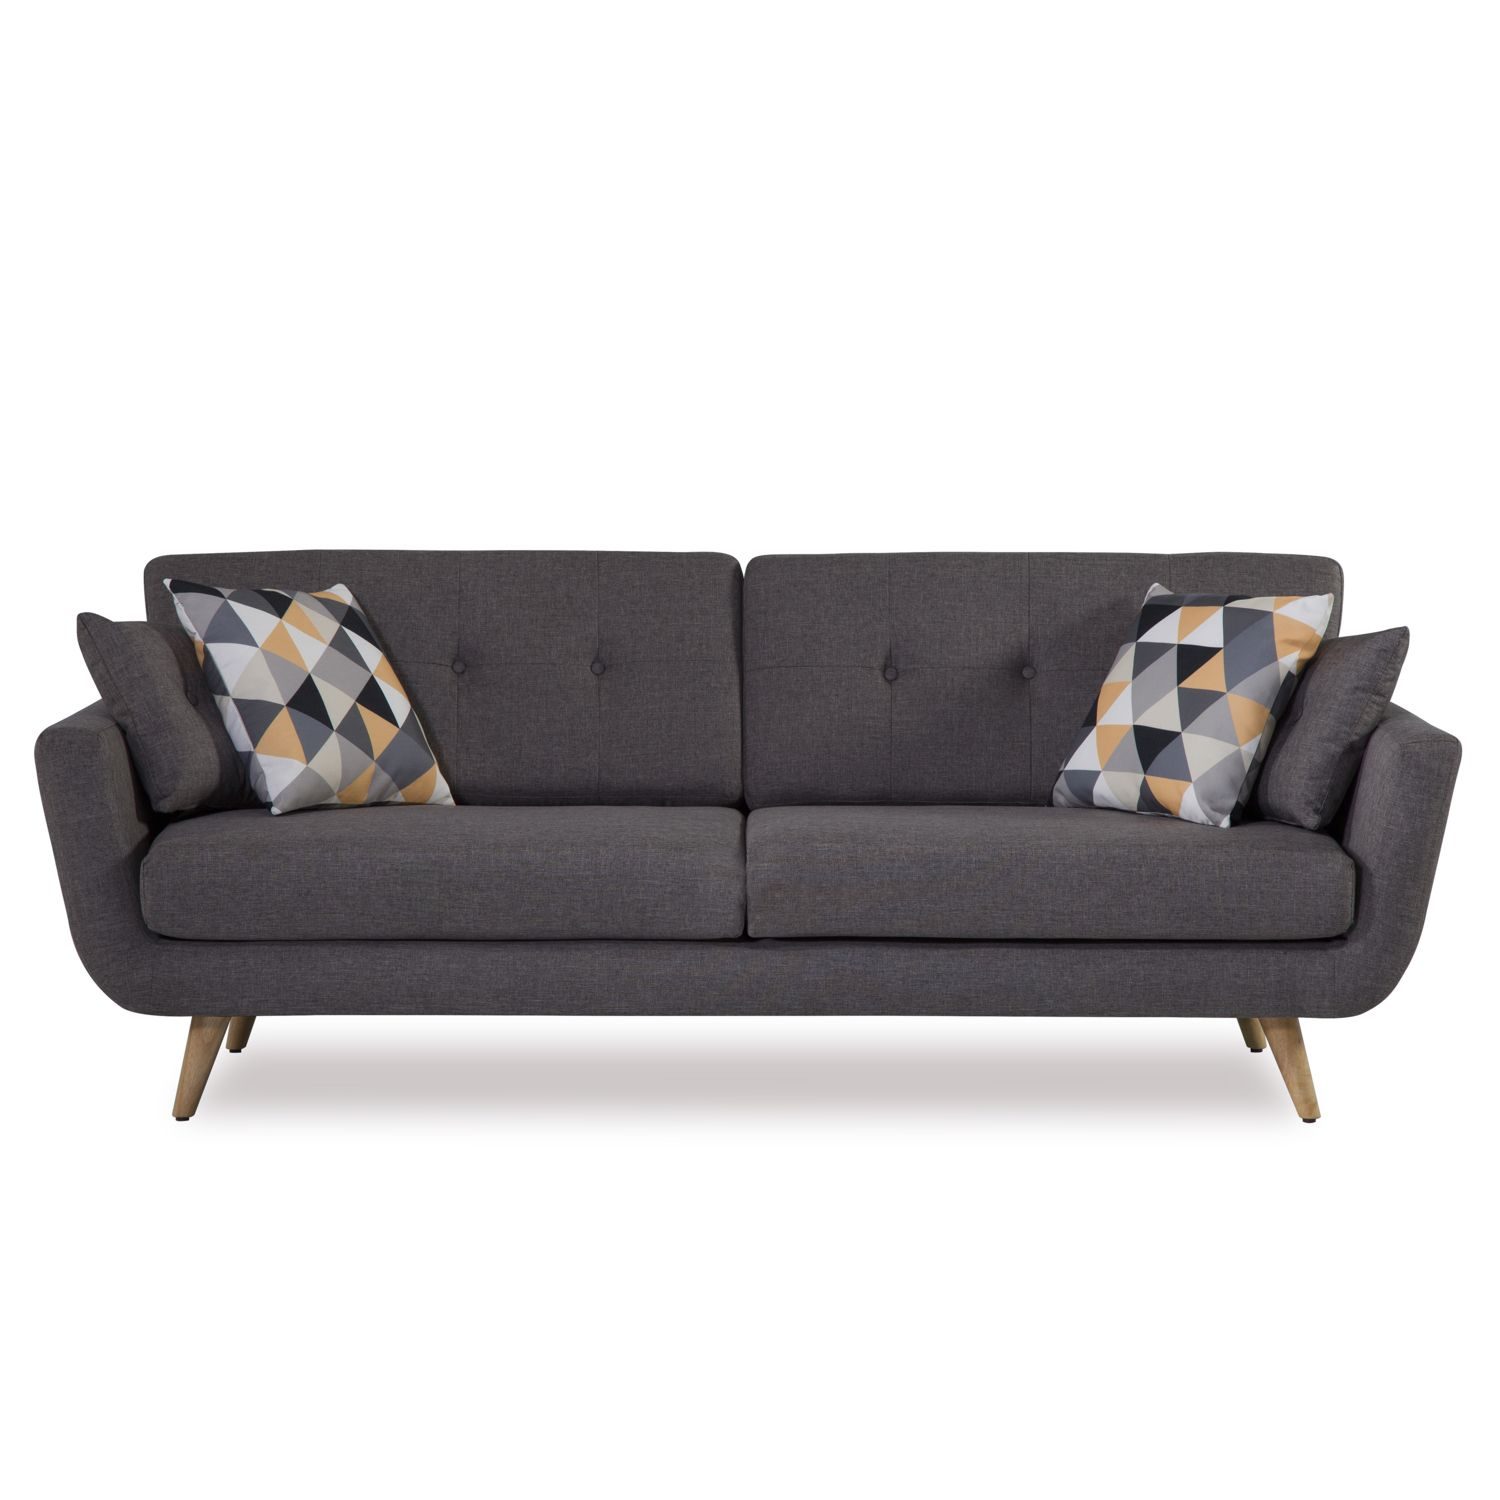 Zara 3 Seater Sofa | House Furniture | Zara home sofa, Three ...